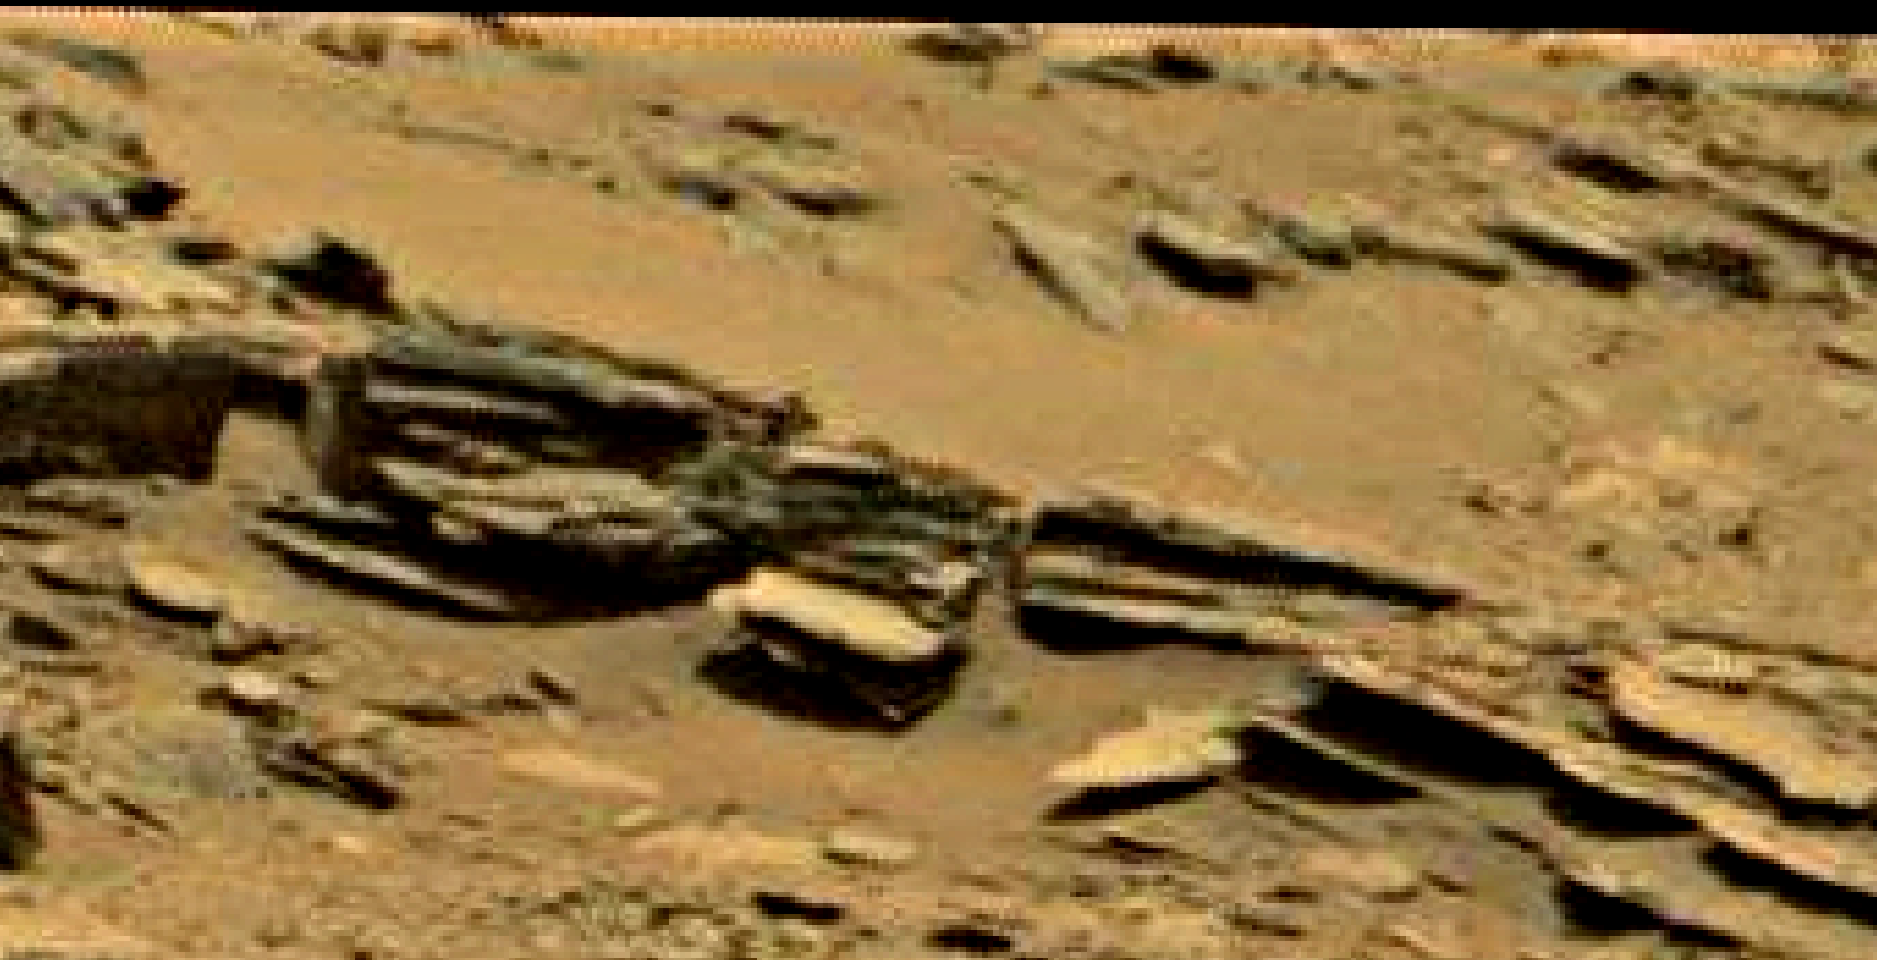 mars sol 1353 anomaly-artifacts 68a-2 was life on mars